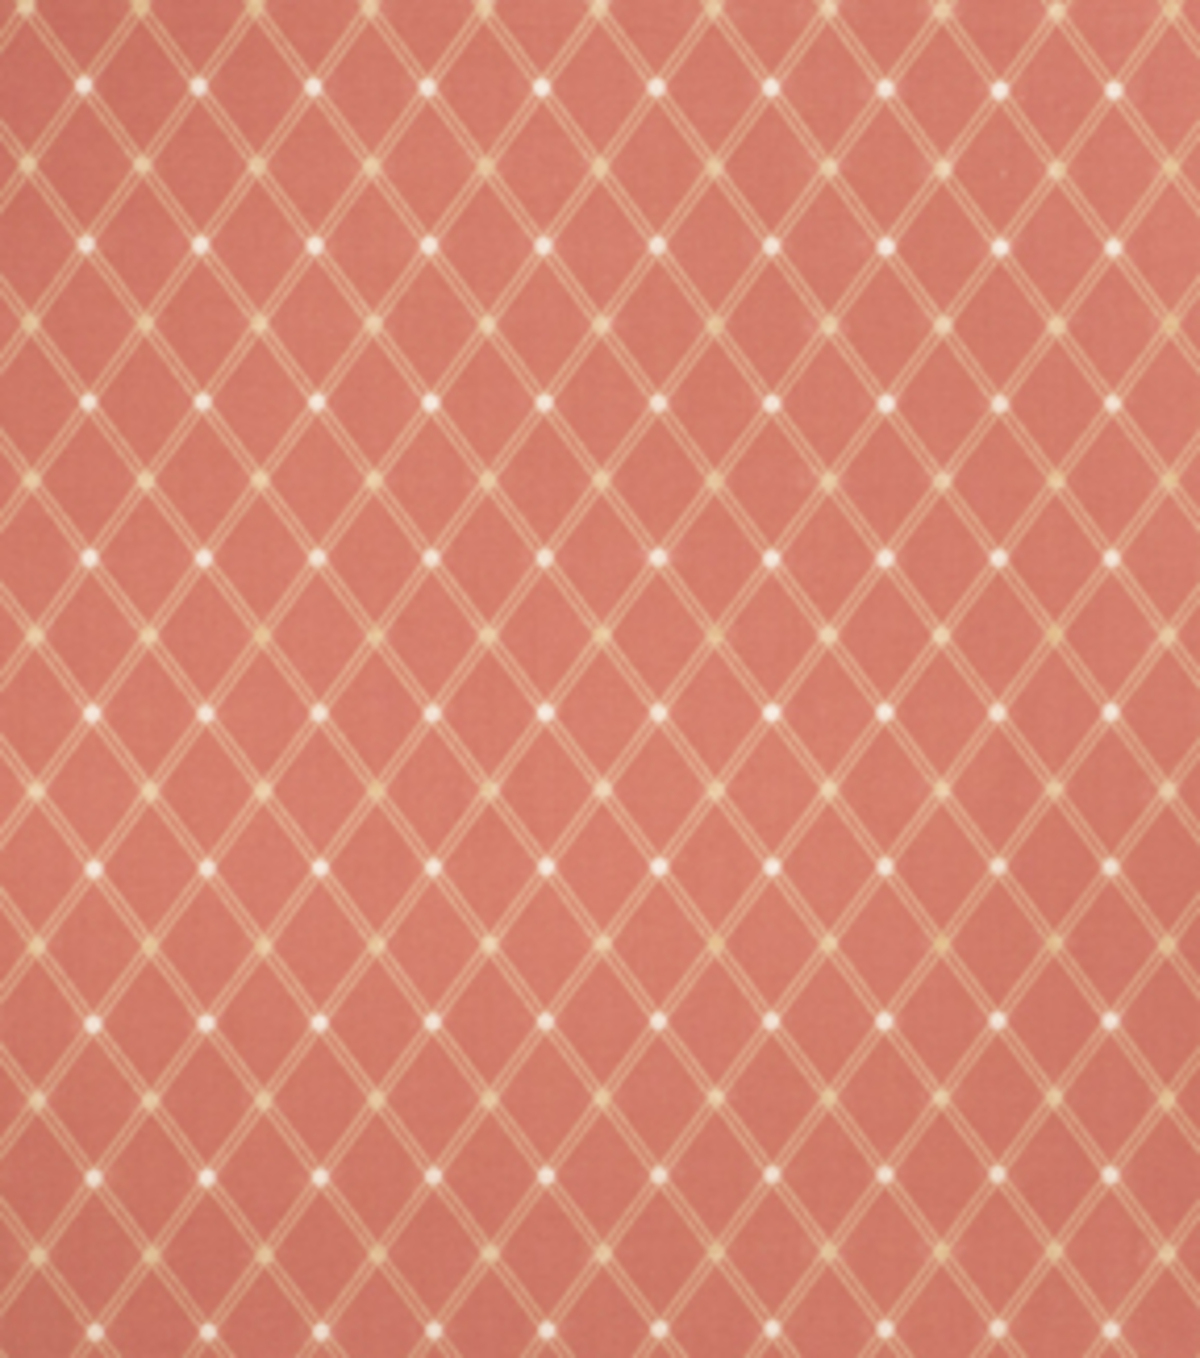 Home Decor 8\u0022x8\u0022 Fabric Swatch-Upholstery Fabric Eaton Square Mellow Coral